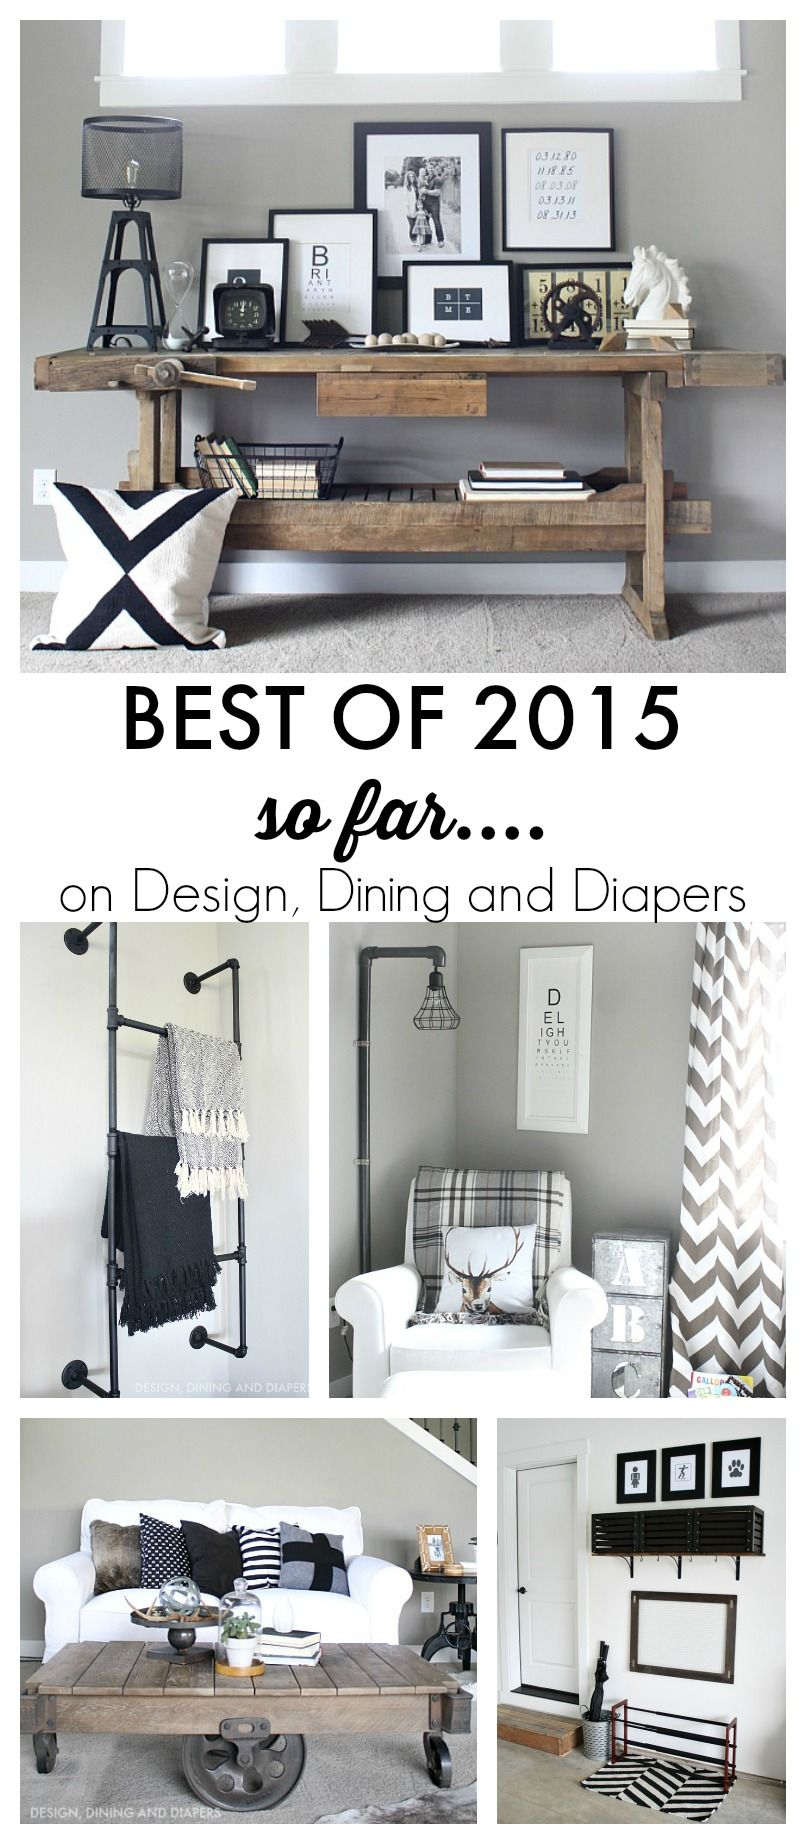 Best of 2015 So Far | Diapers, Dining and Industrial farmhouse